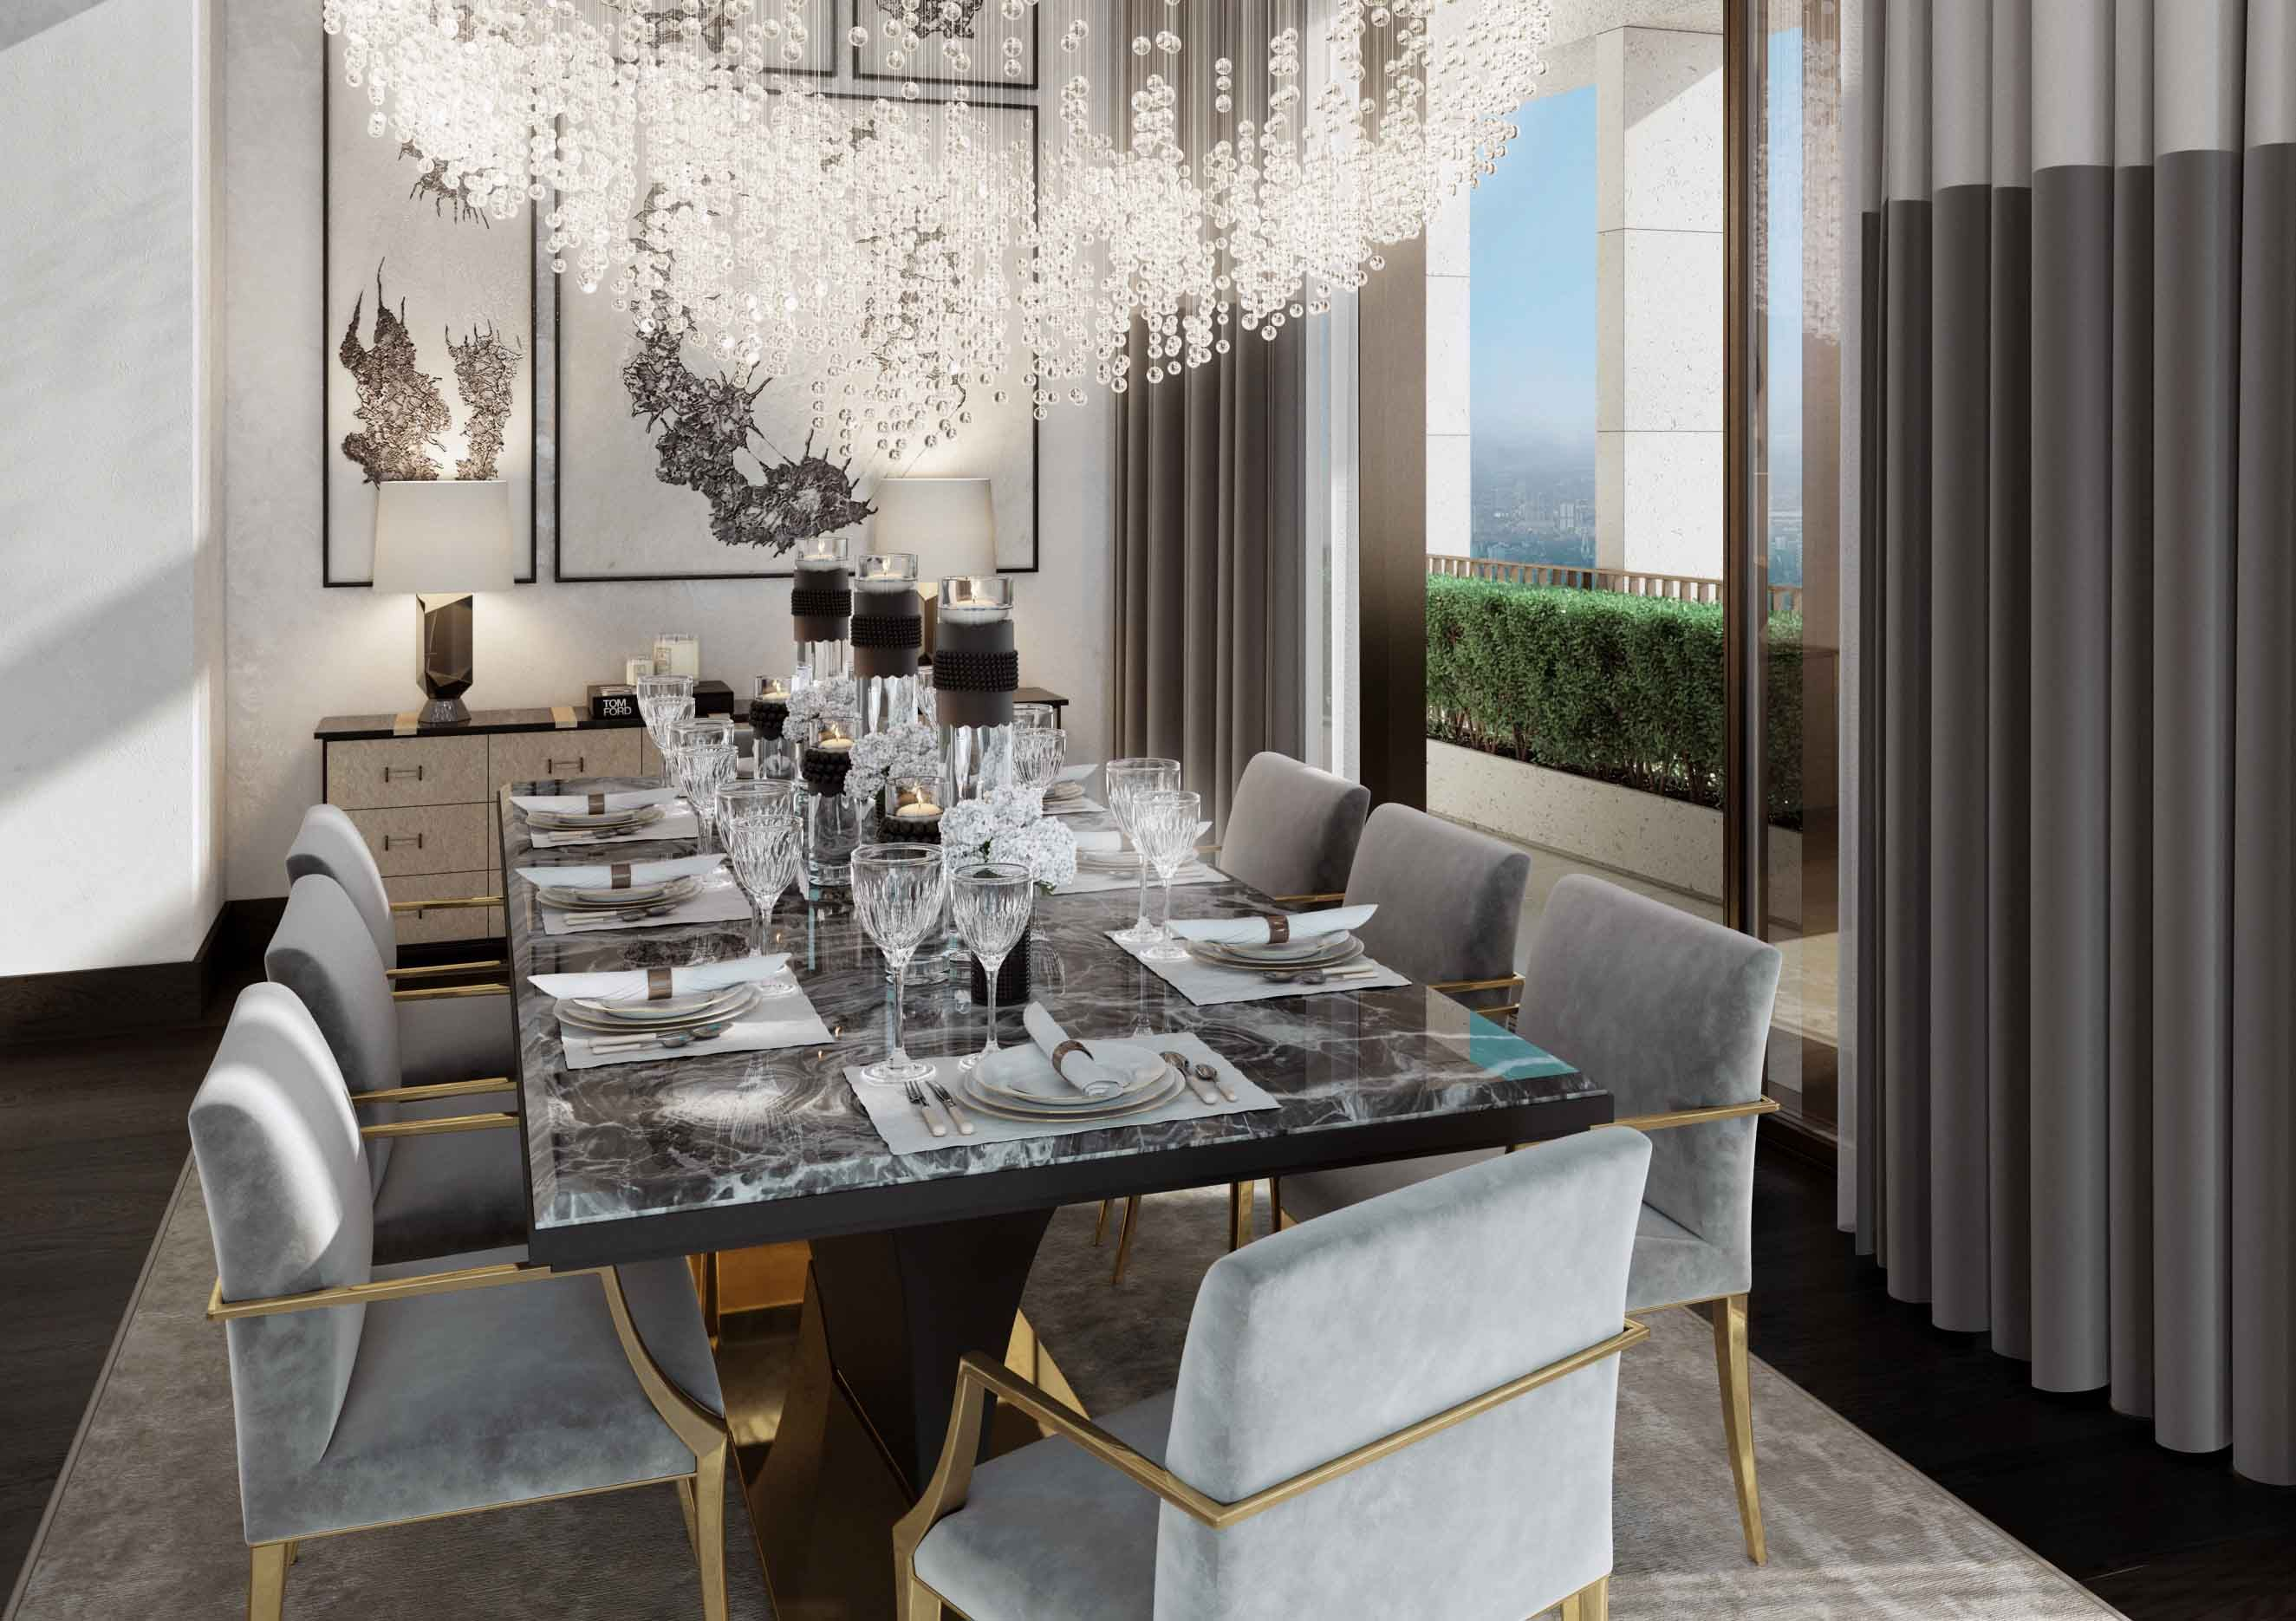 32 Stylish Dining Room Ideas To Impress Your Dinner Guests: Dining Room, St James Penthouse - Morpheus London